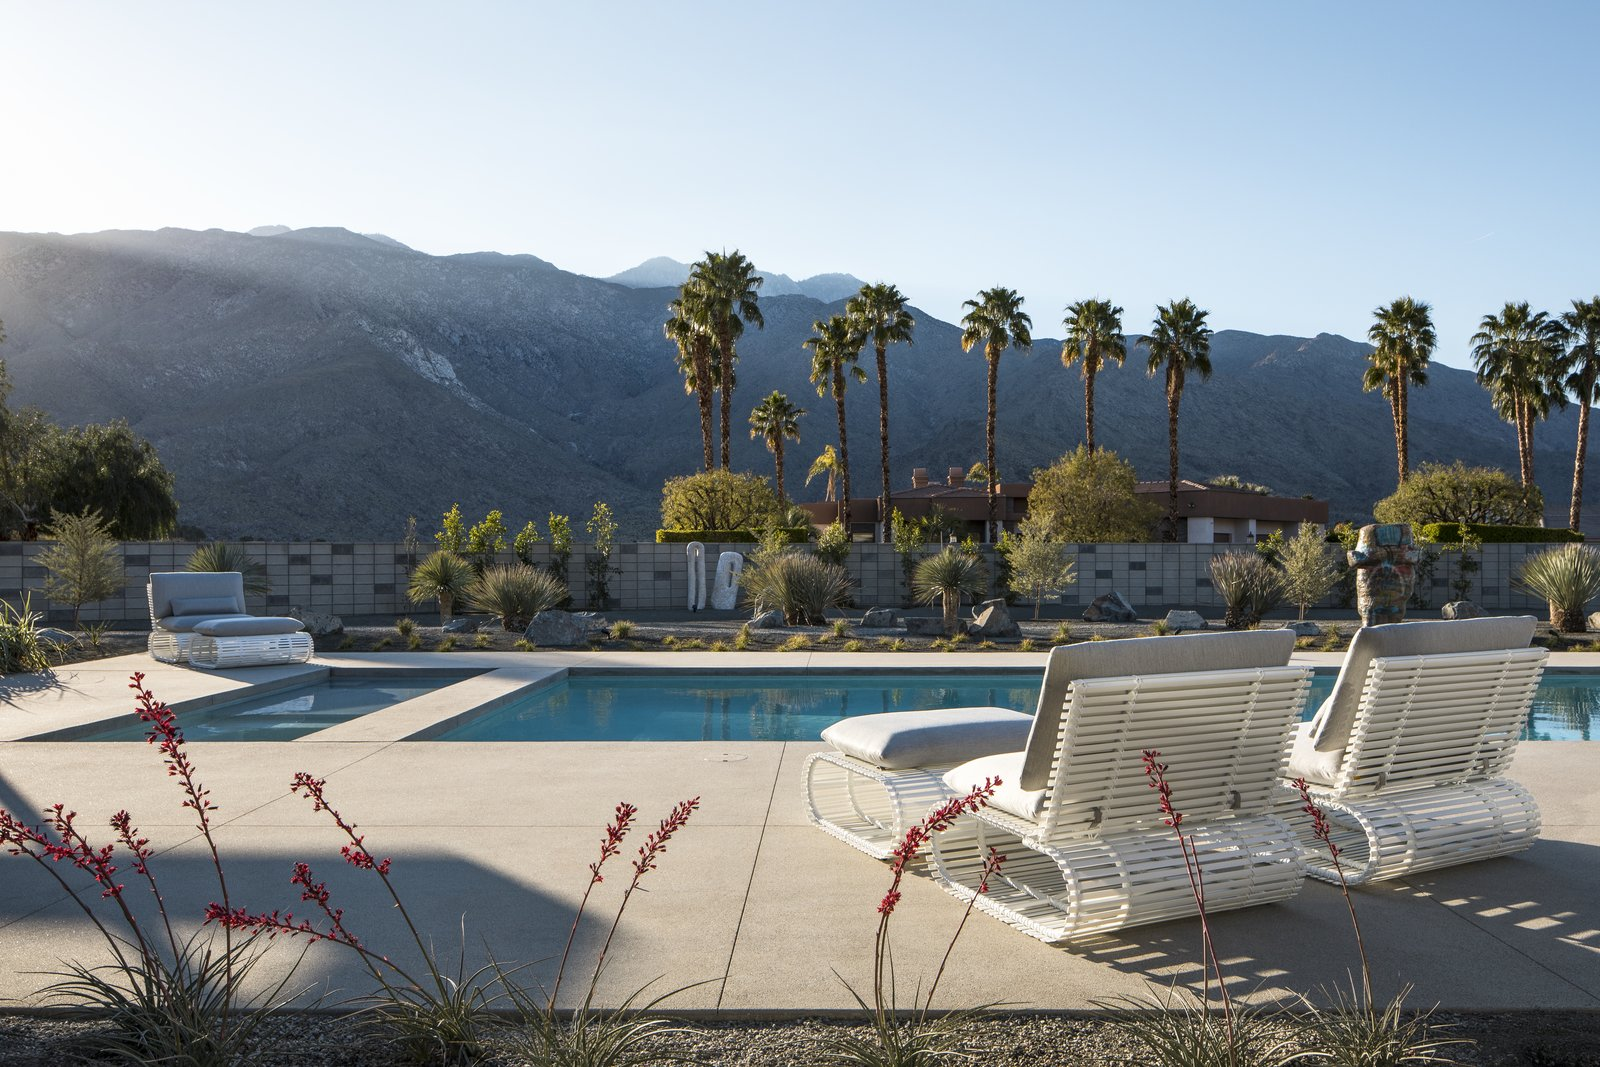 Astounding views of palm trees and the surrounding Palm Springs landscape are provided from 360 degree exterior views.